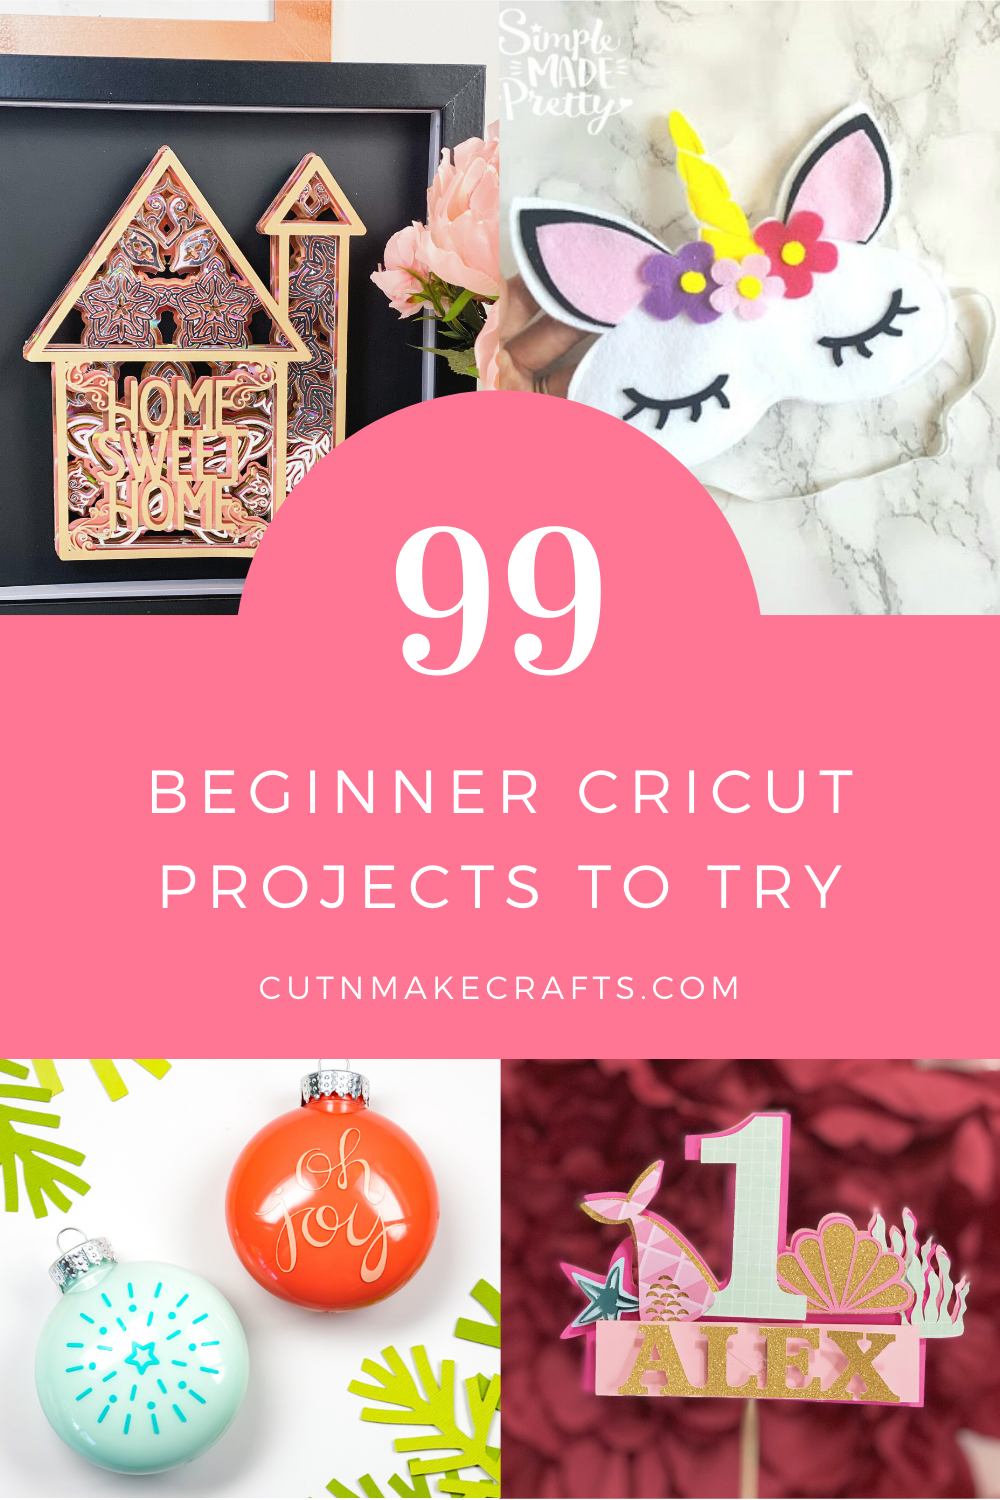 99 Free Cricut Projects For Beginners Cut N Make Crafts